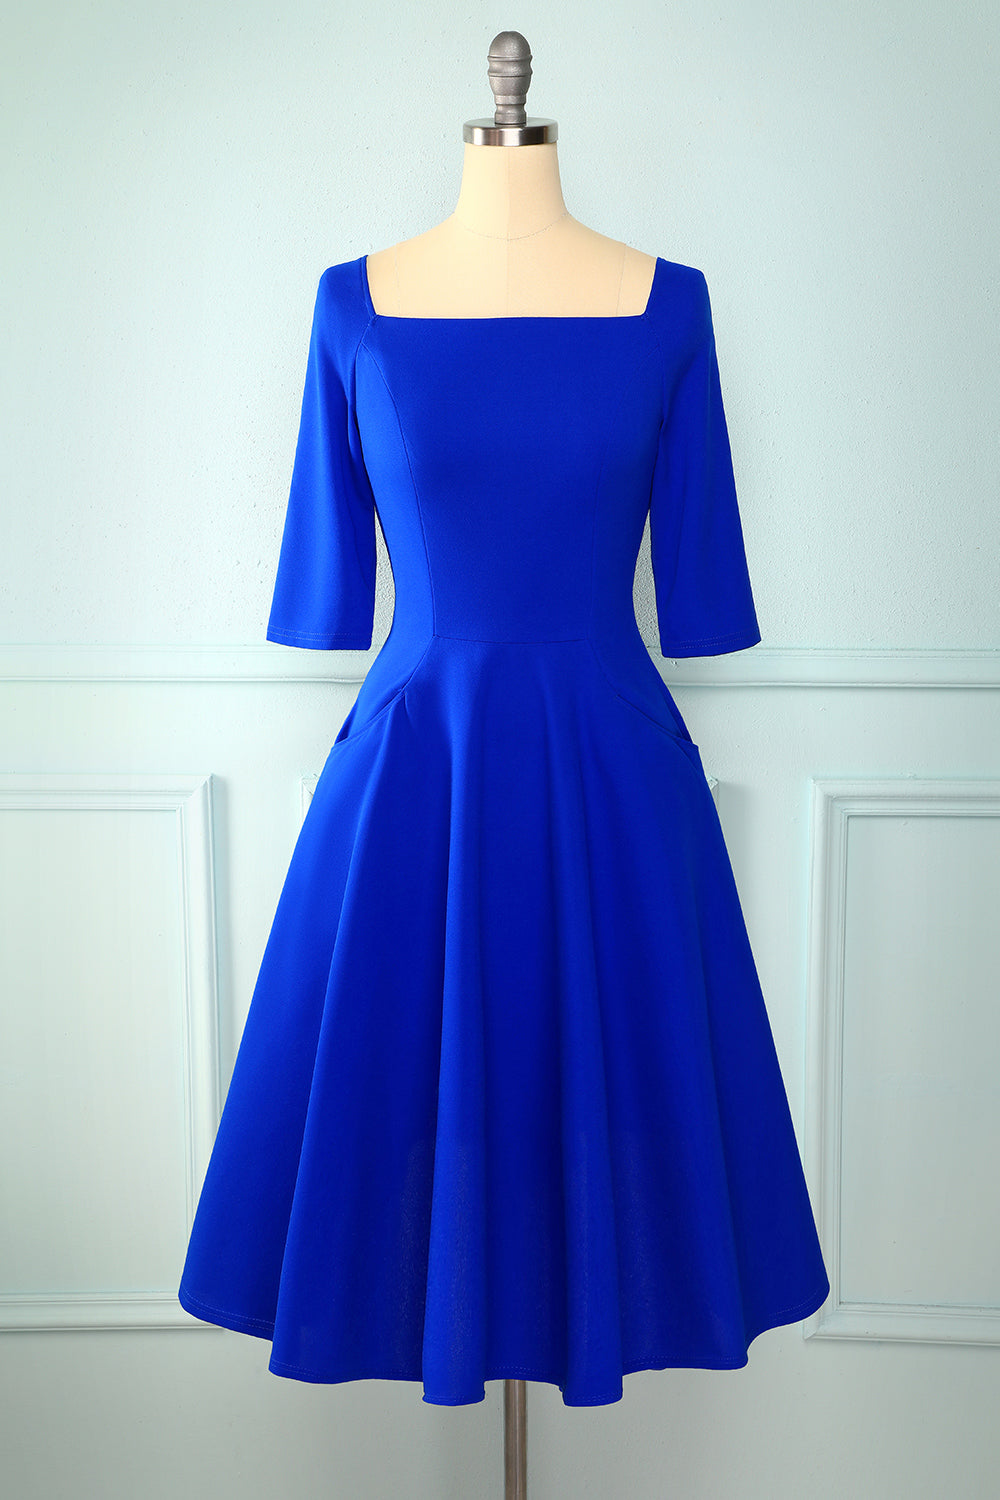 Royal Blue Midi Dress with Pockets